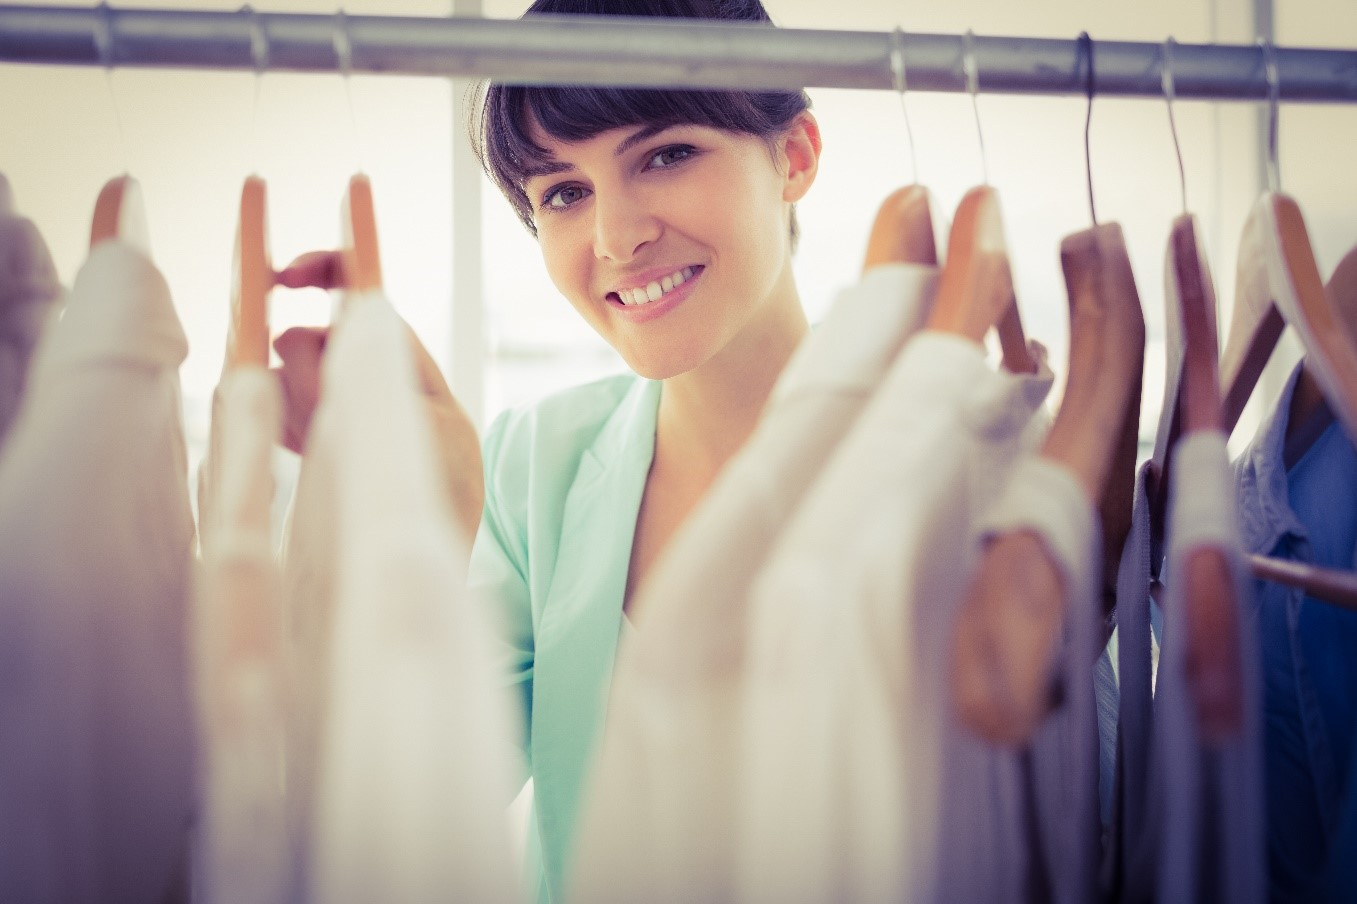 A woman in front of an organized custom closet.